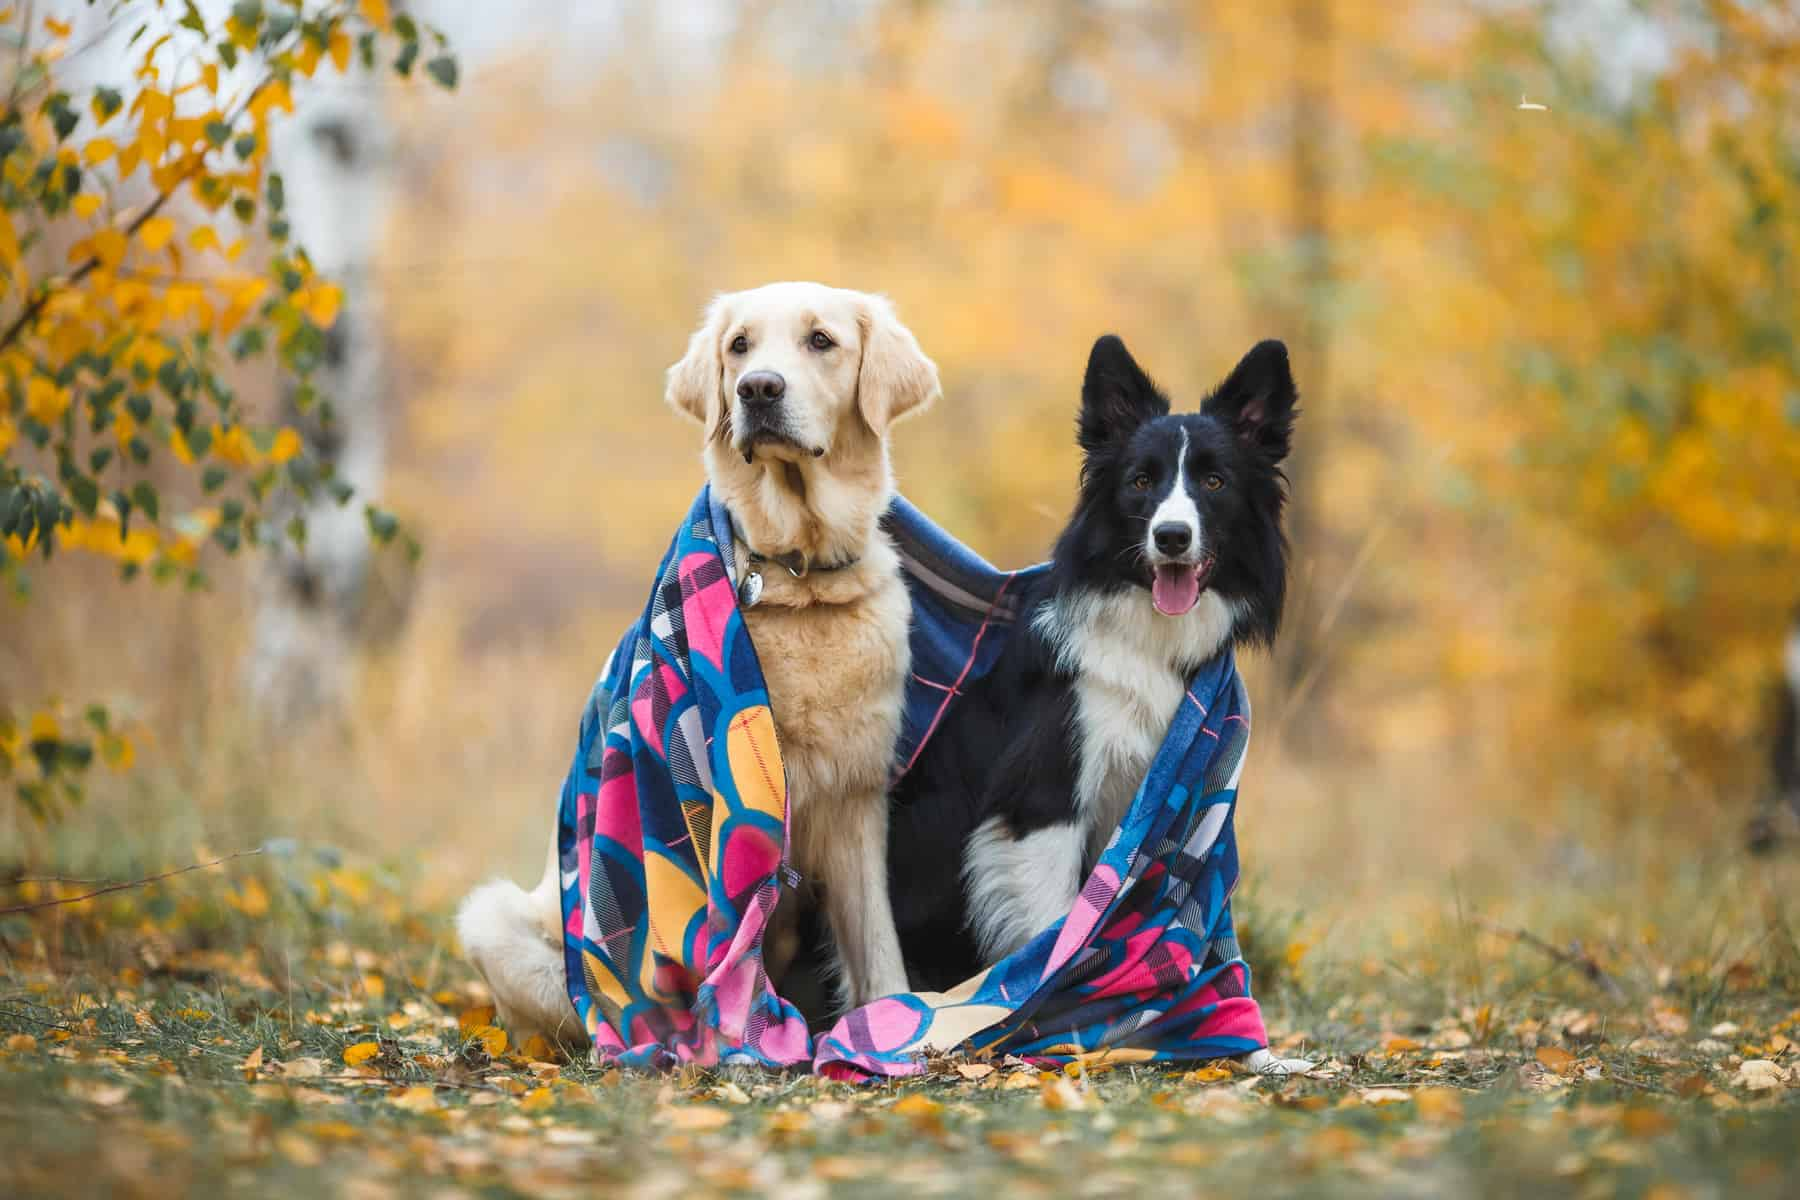 A Golden Retriever and a Border Collie